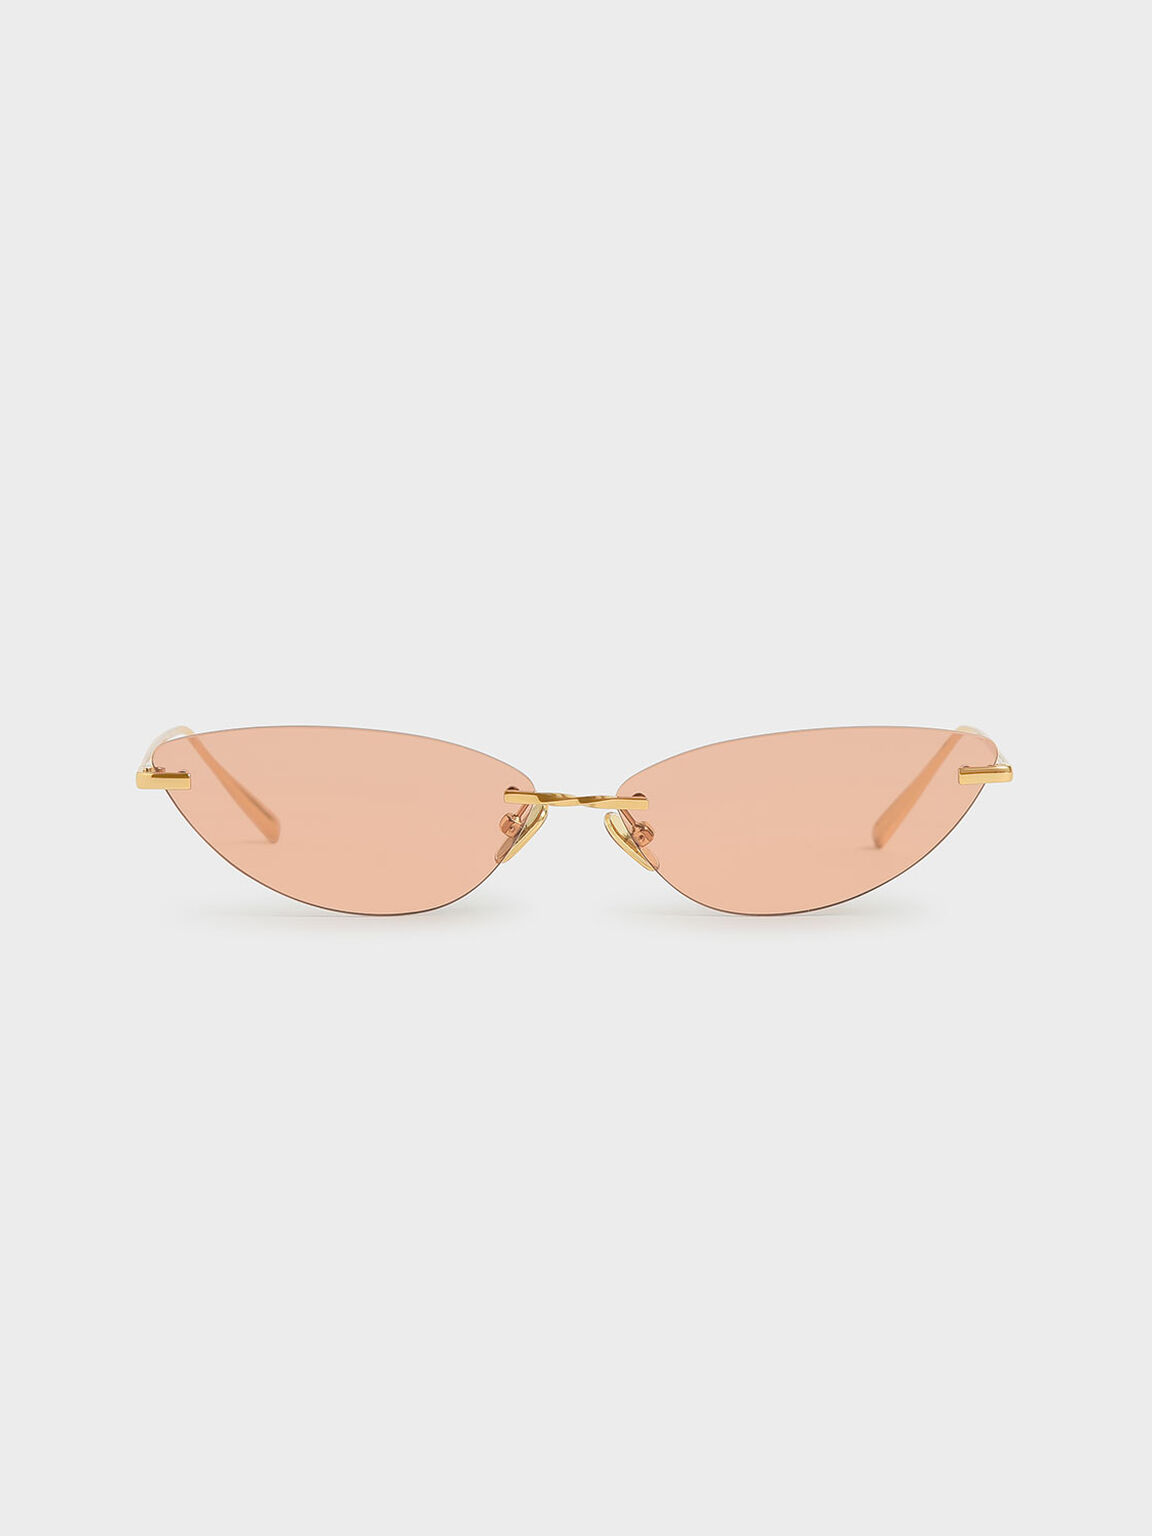 Rimless Cat-Eye Sunglasses, Orange, hi-res